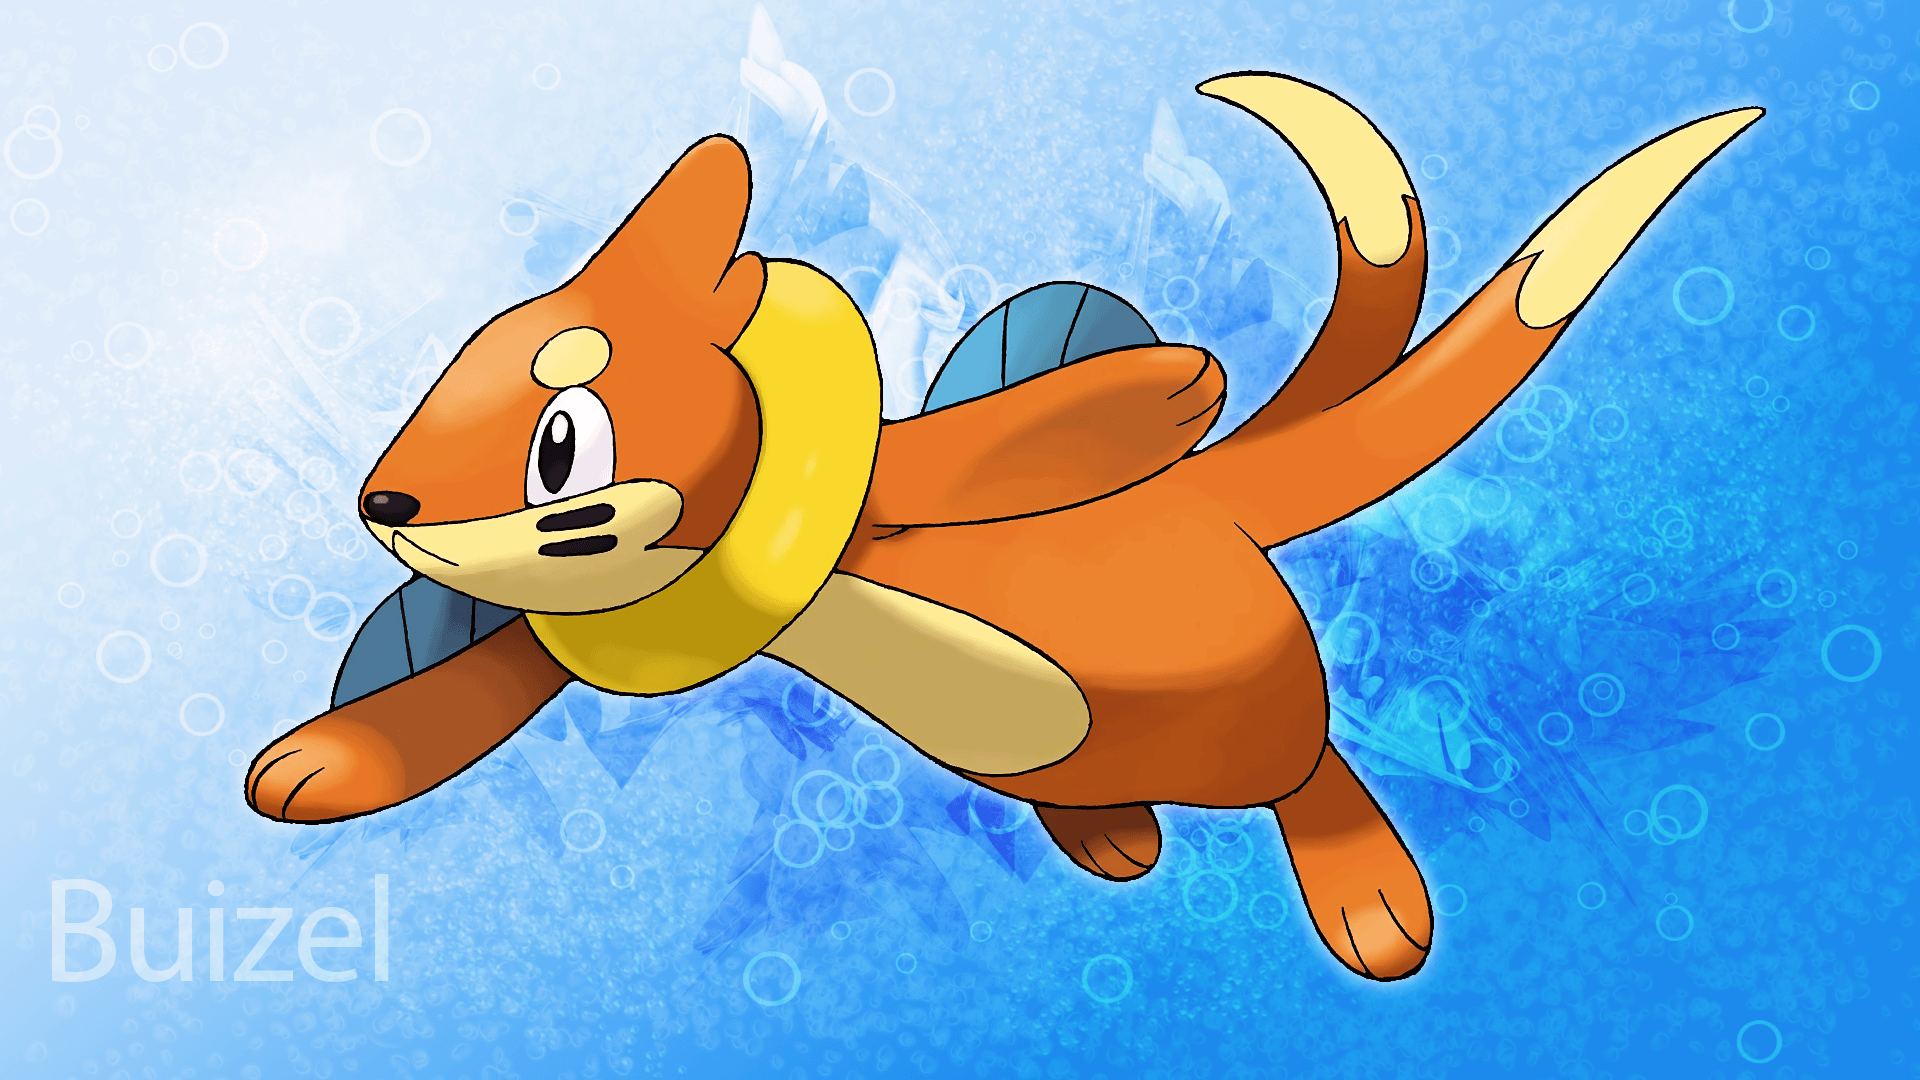 Buizel Desktop Background V2 by KirkButler on DeviantArt